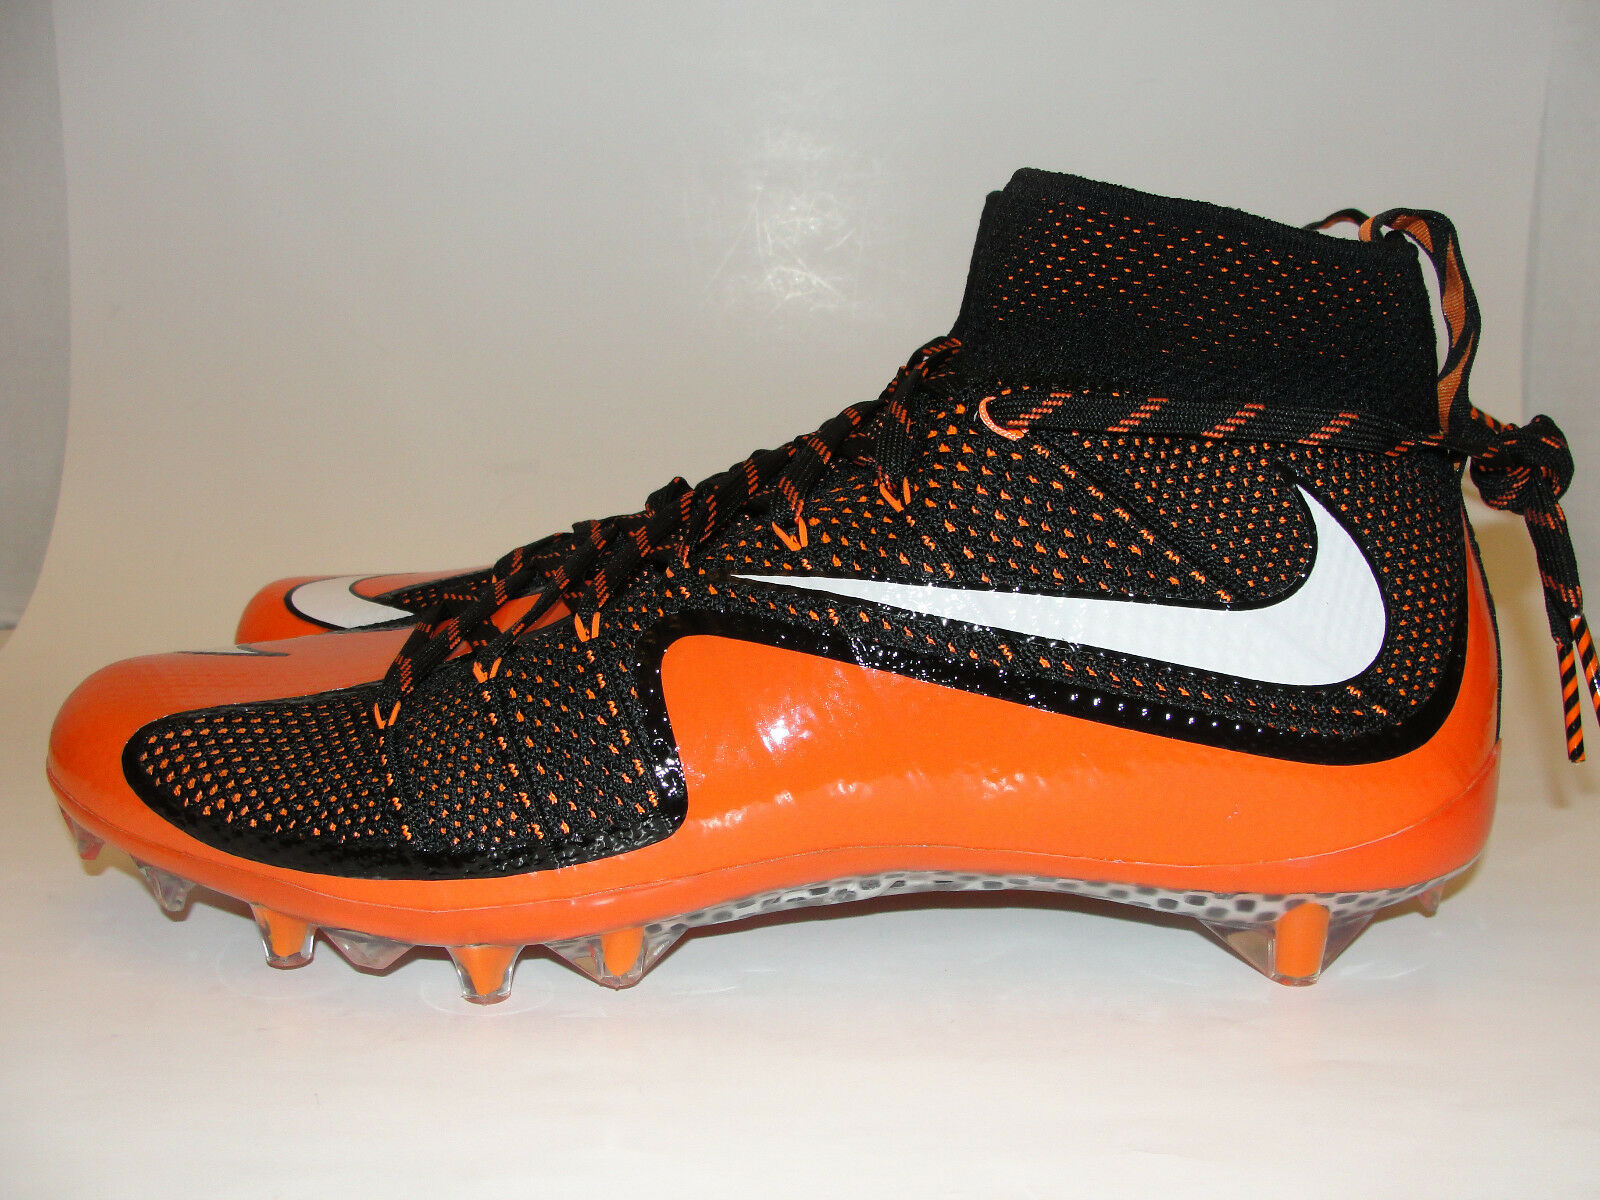 Nike Vapor Untouchable TD Flyknit Carbon Football Cleats sz 13 Orange Black